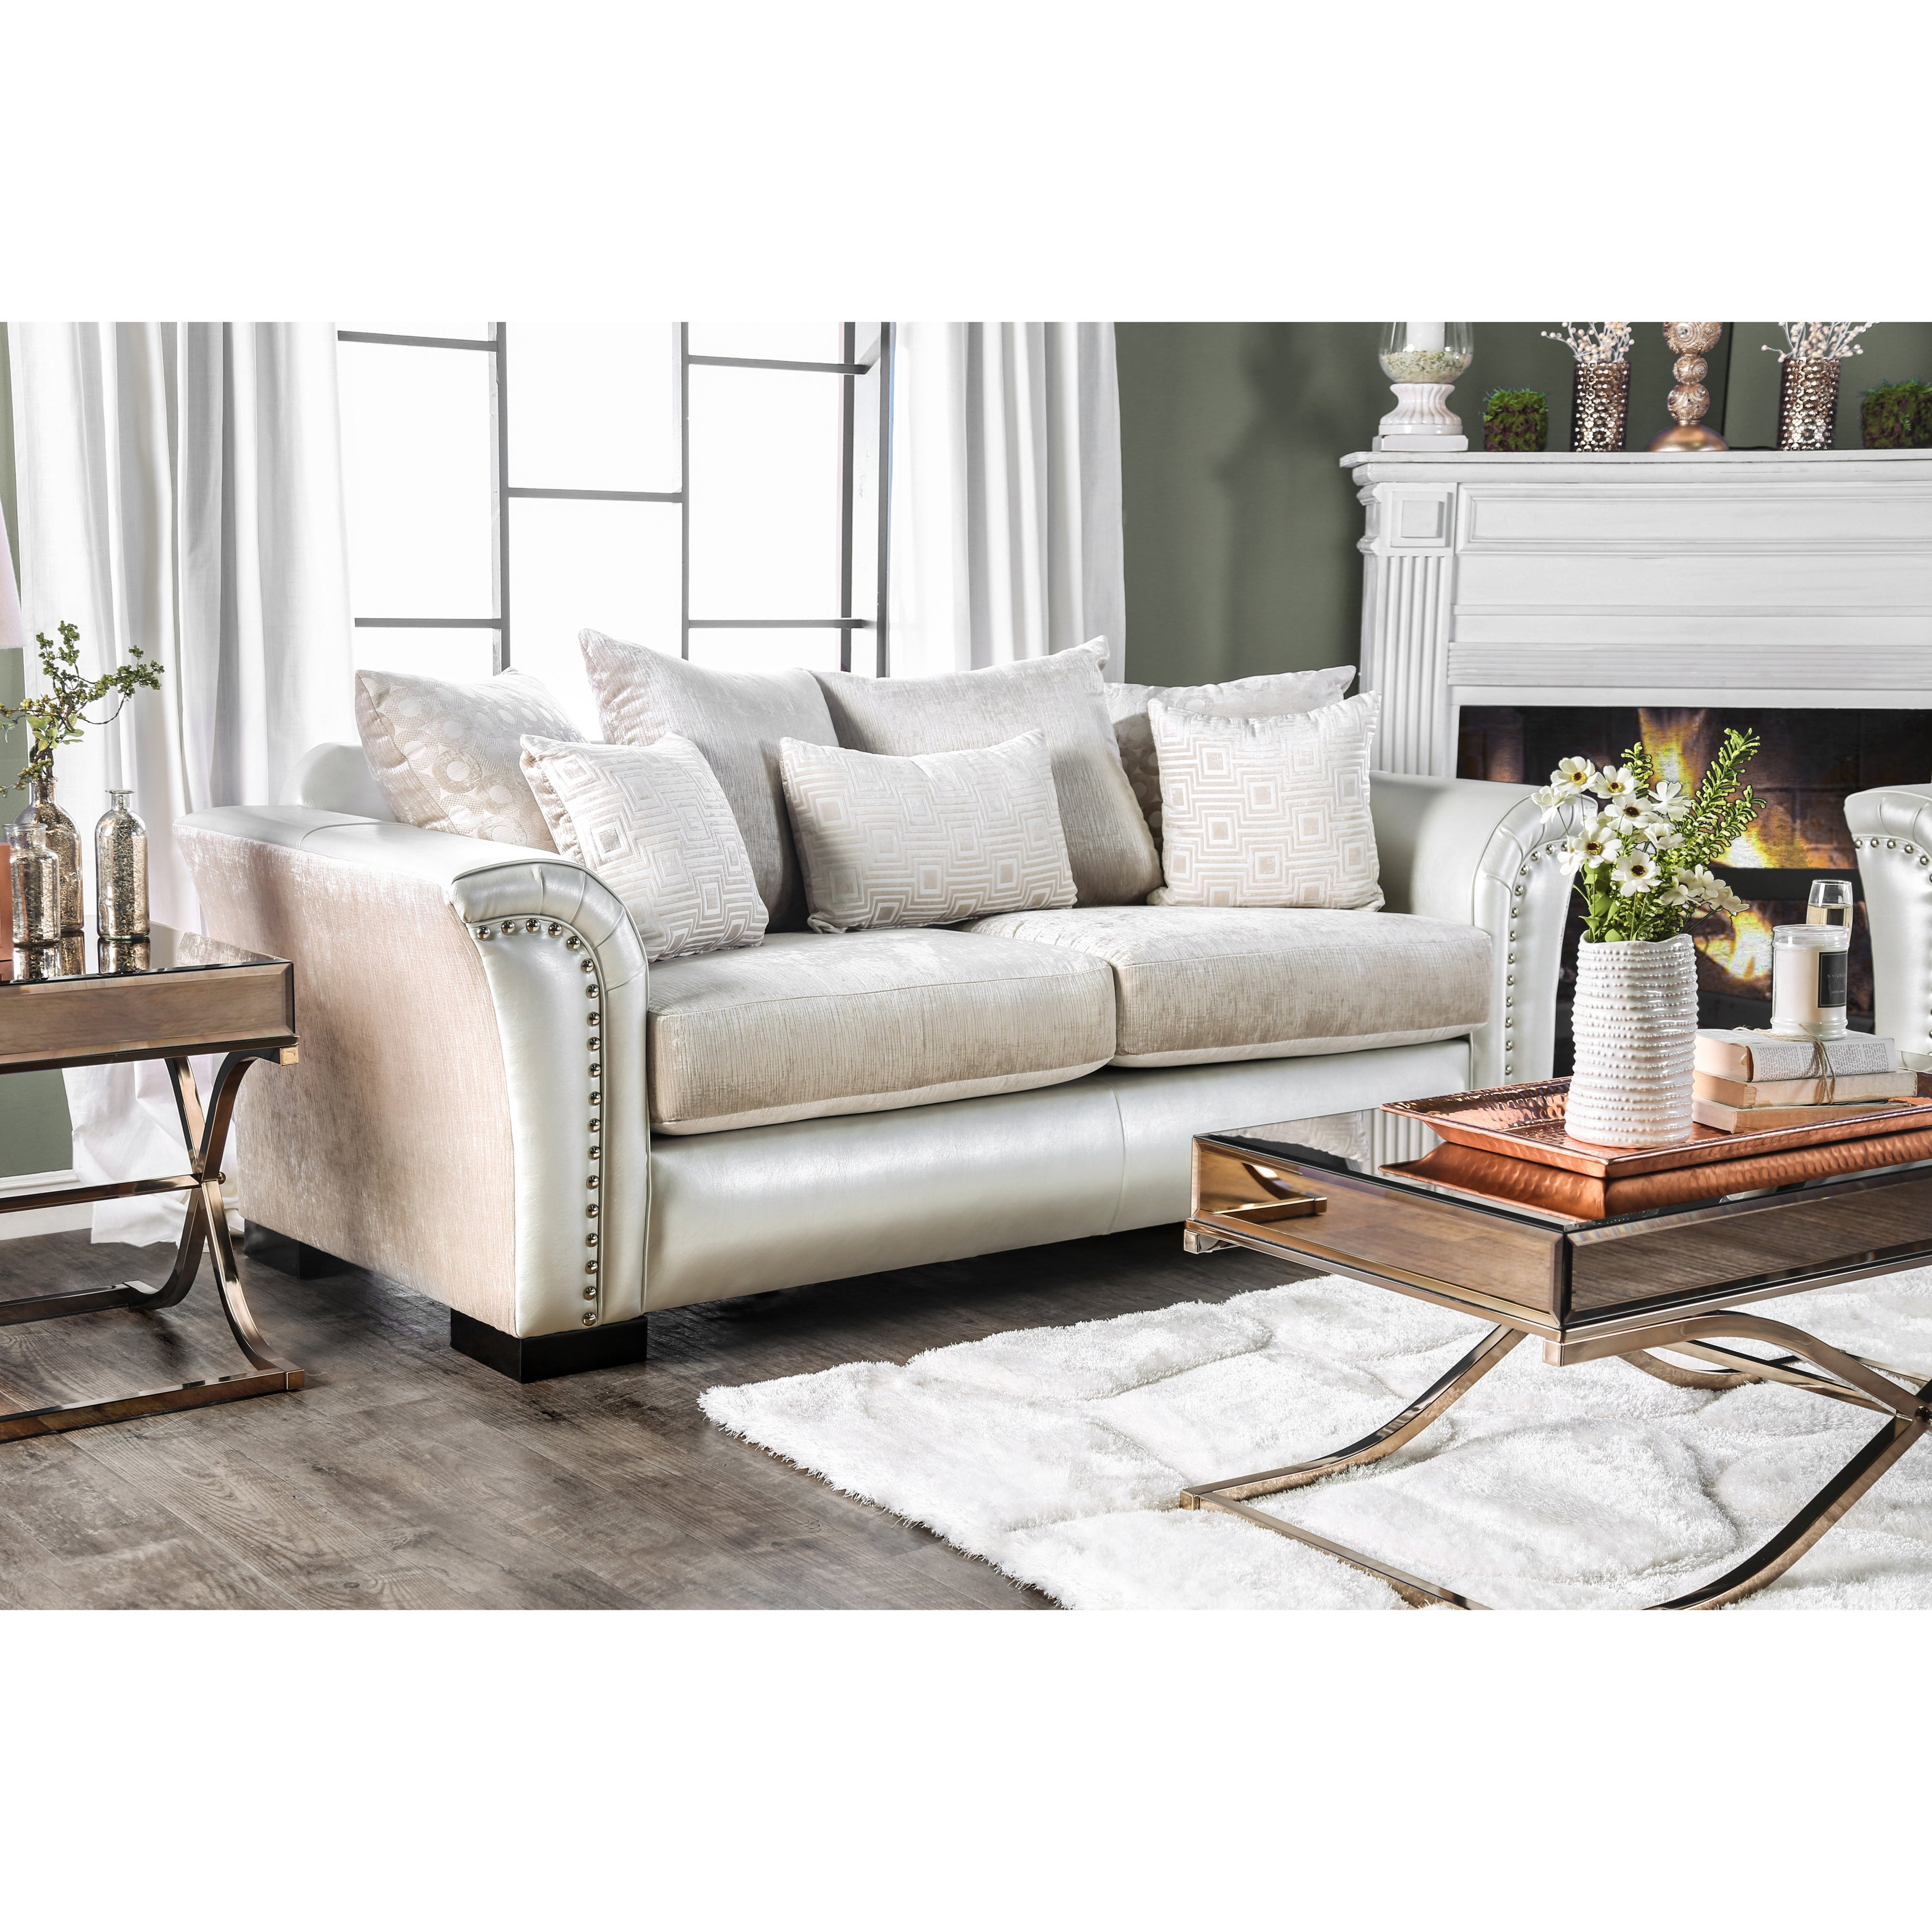 Shop Furniture of America Linwood Classic Contemporary Two-Tone Sofa ...